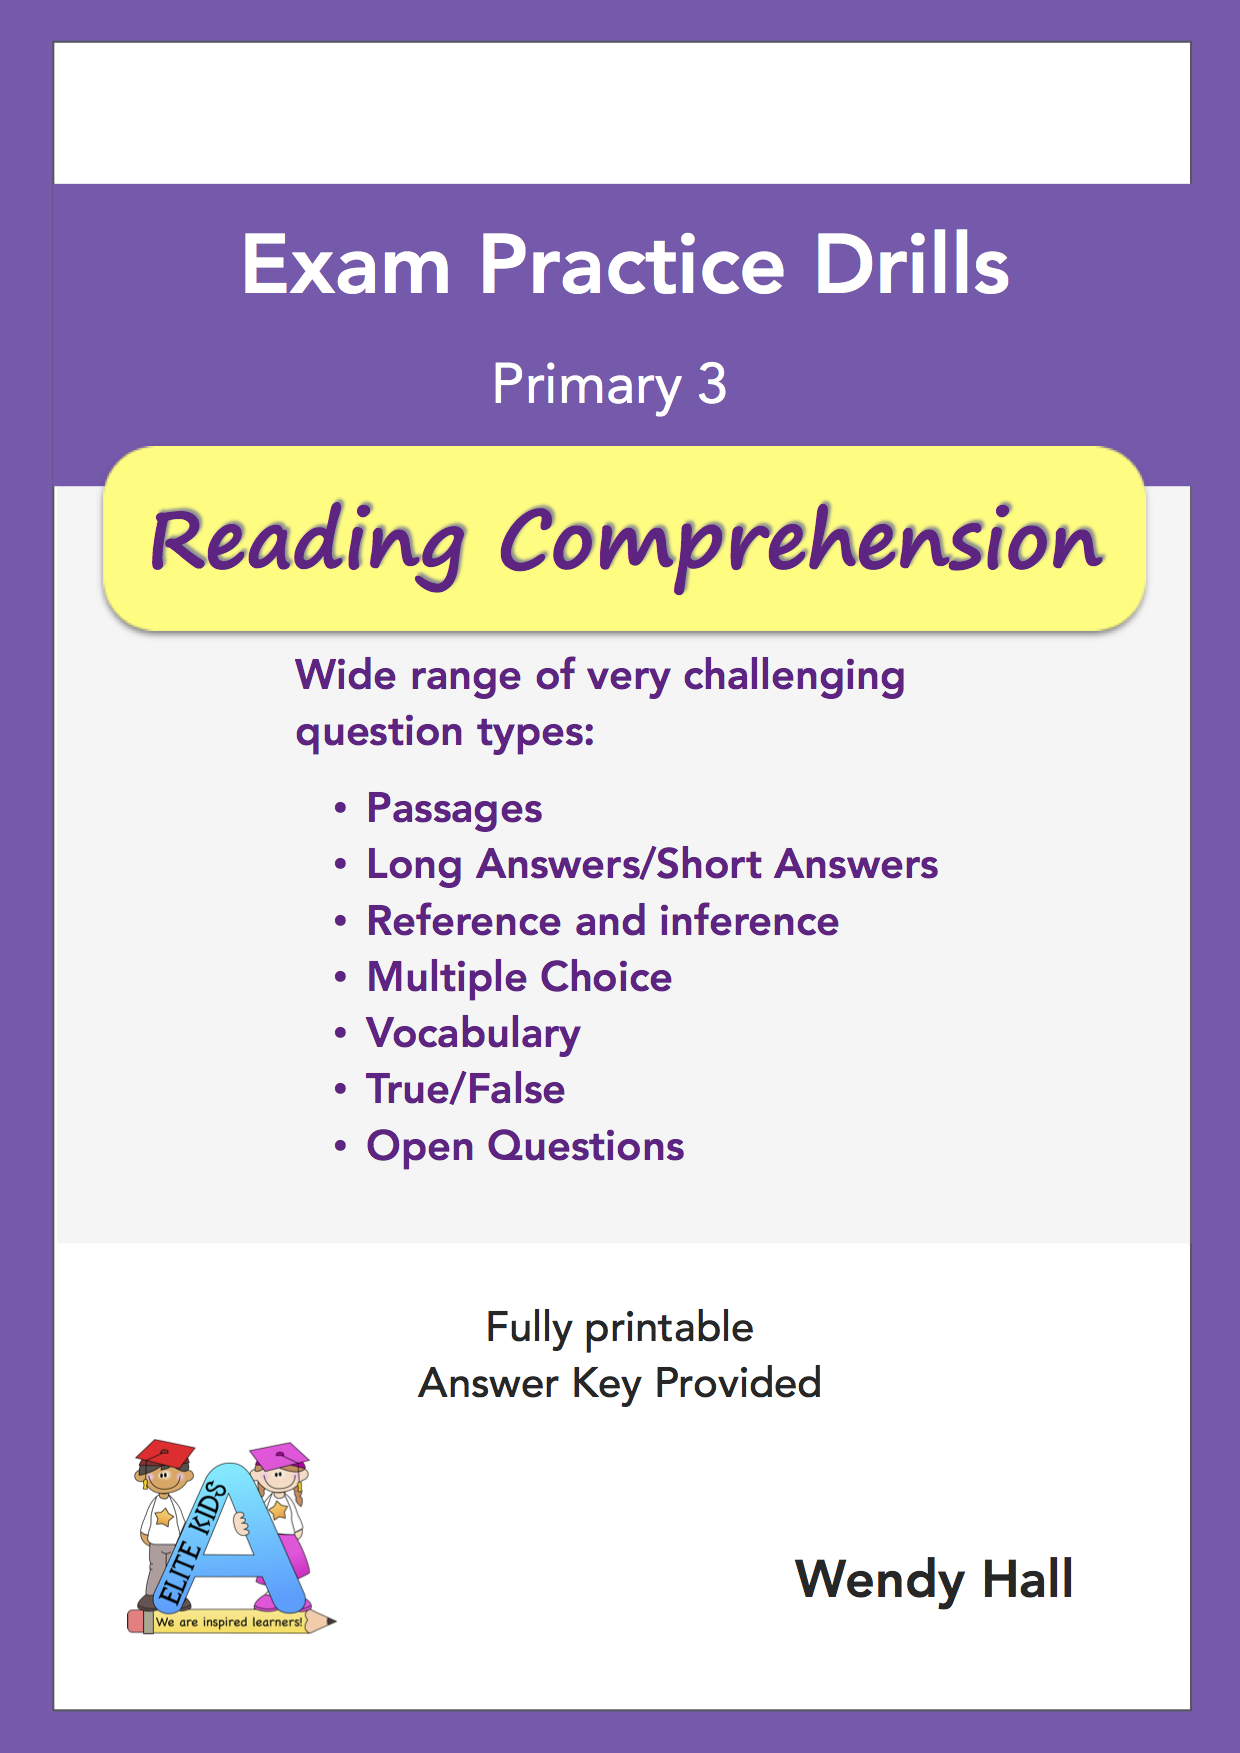 Elite Kids | Exam Practice Drills - Reading Comprehension - Primary 3